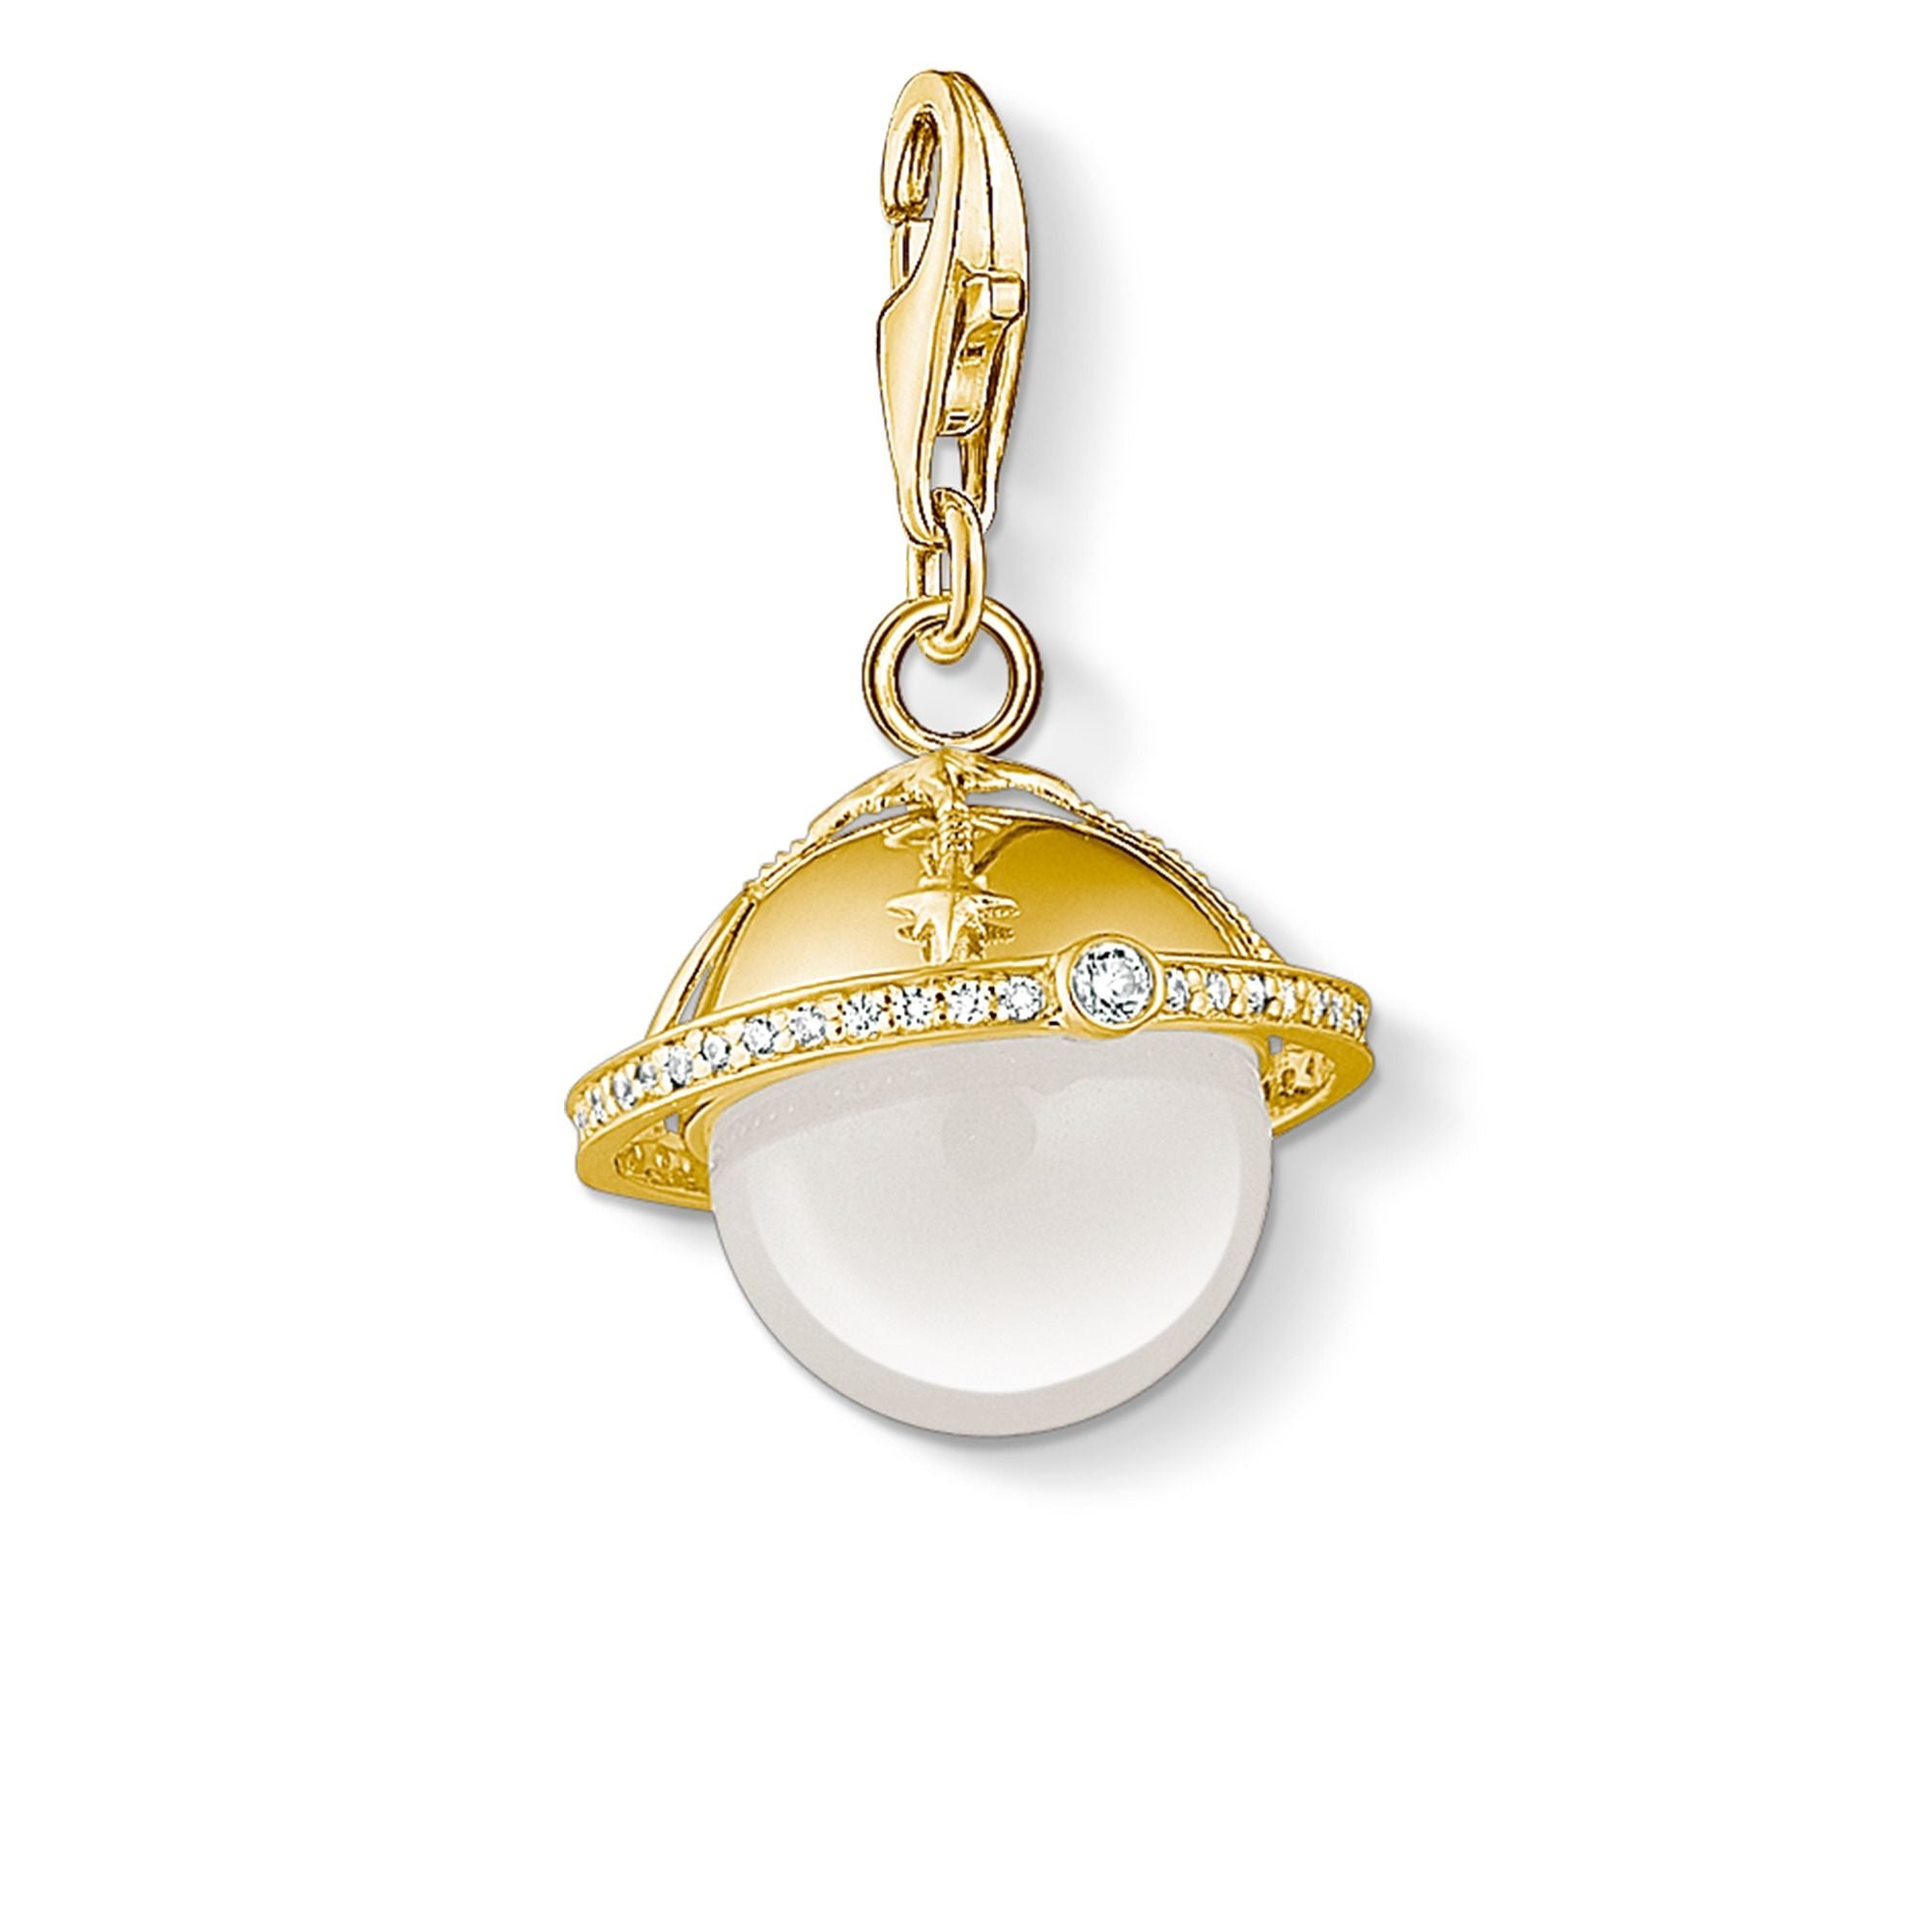 Thomas Sabo Charm Club Golden Planet 1755-903-14